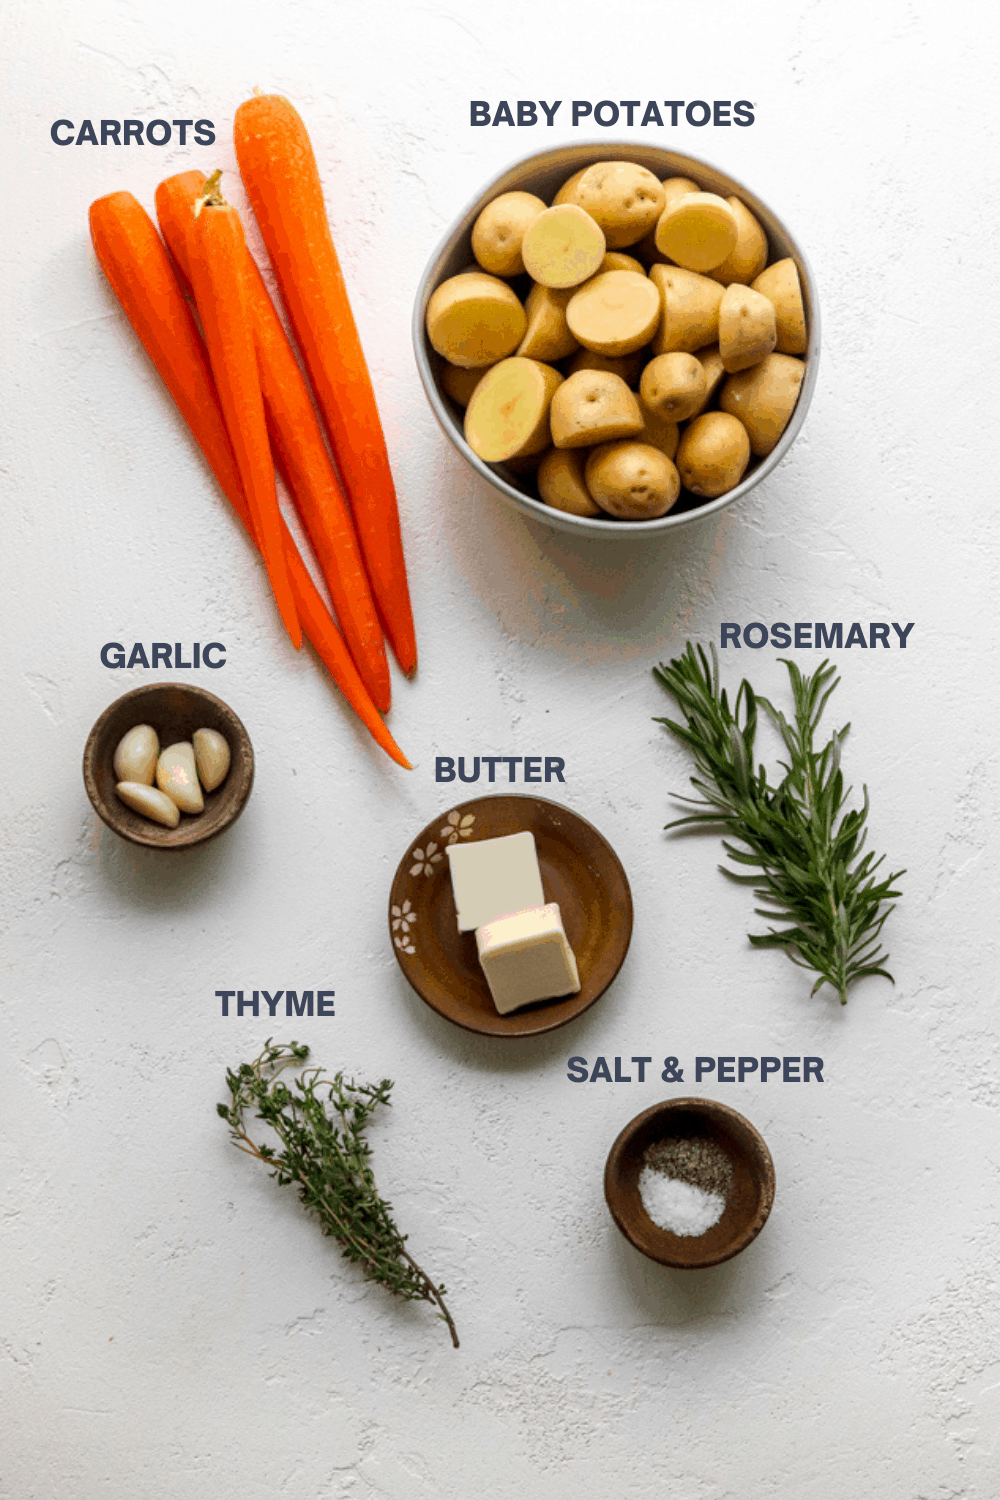 4 whole carrots next to a bowl of sliced potatoes, rosemary, thyme. garlic in a bowl, butter on a brown plate and salt and pepper next to it on a white surface.